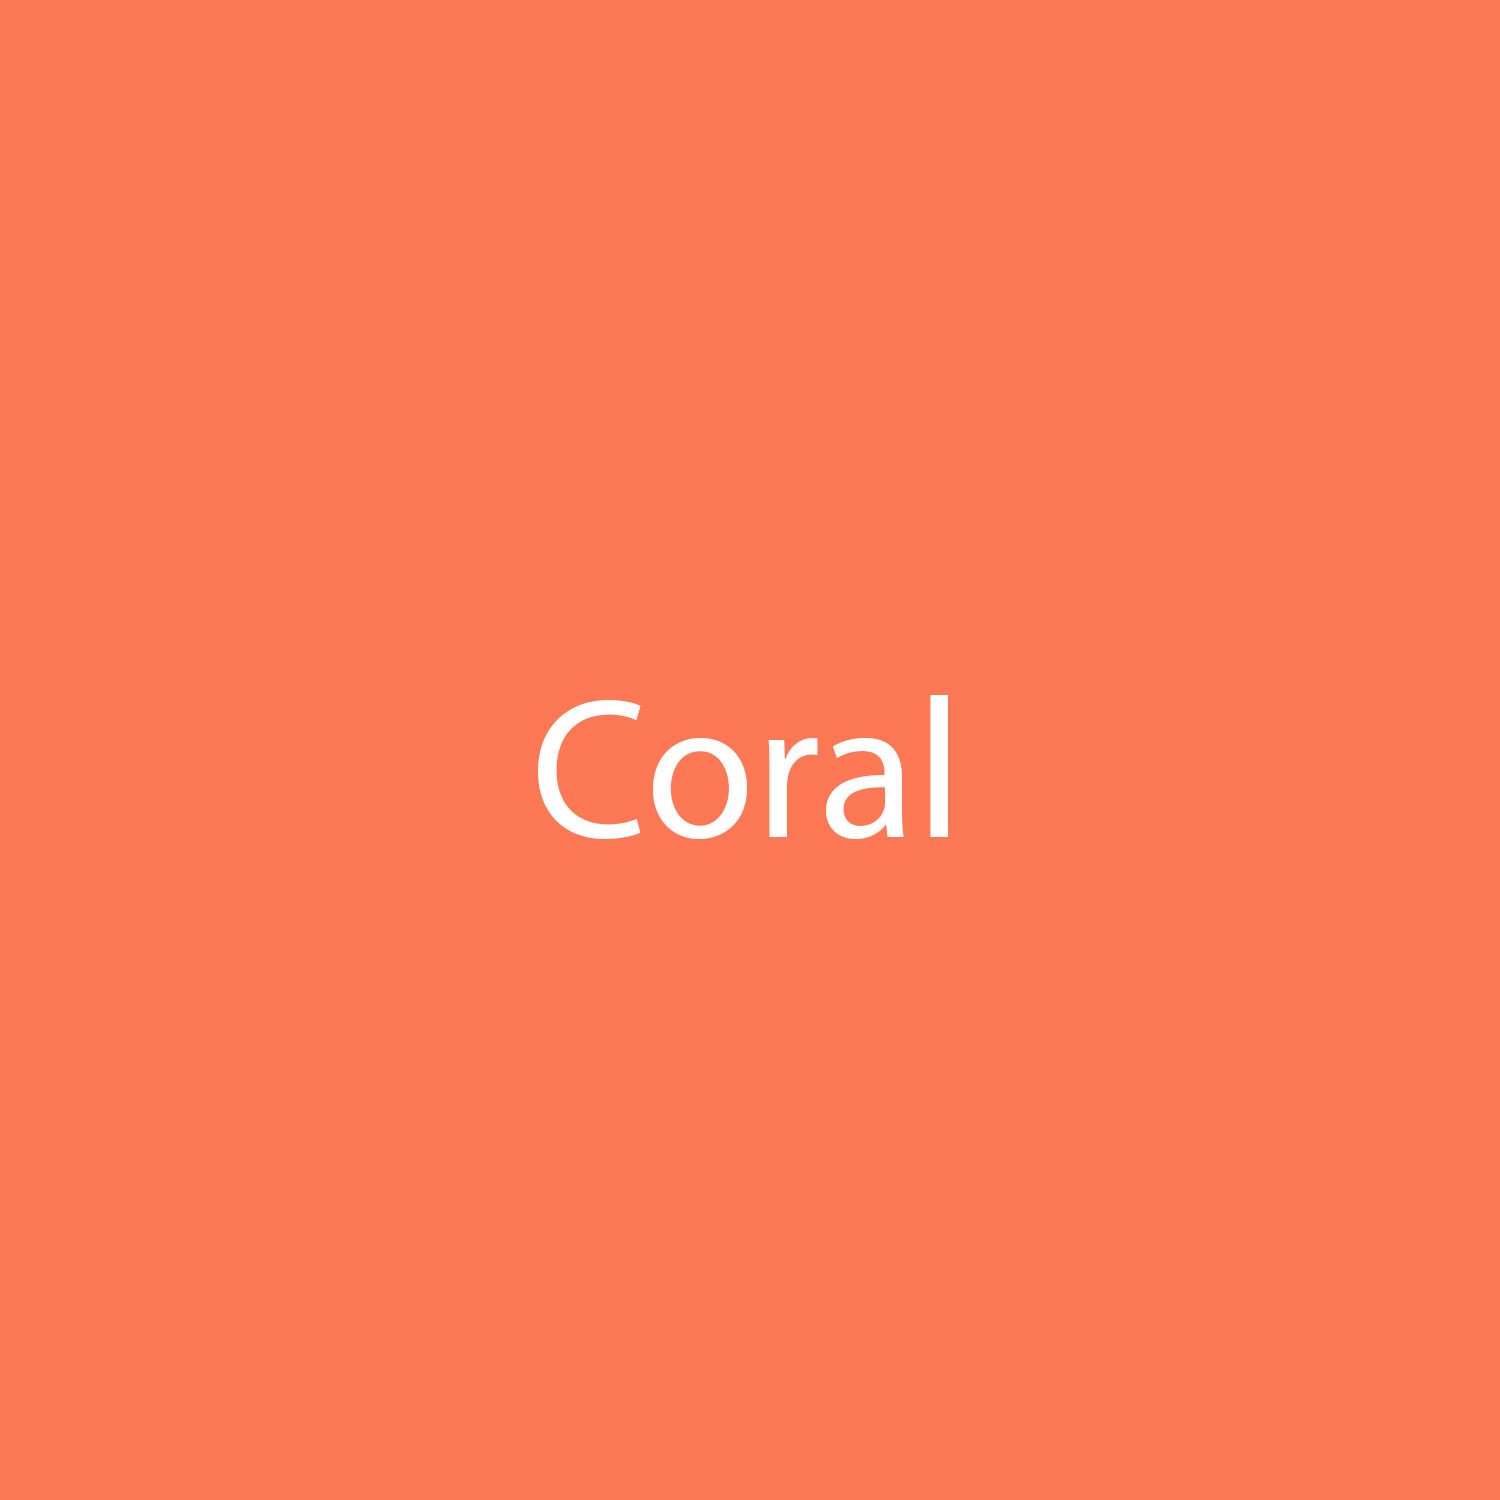 StarCraft SD Removable Matte Adhesive - Coral